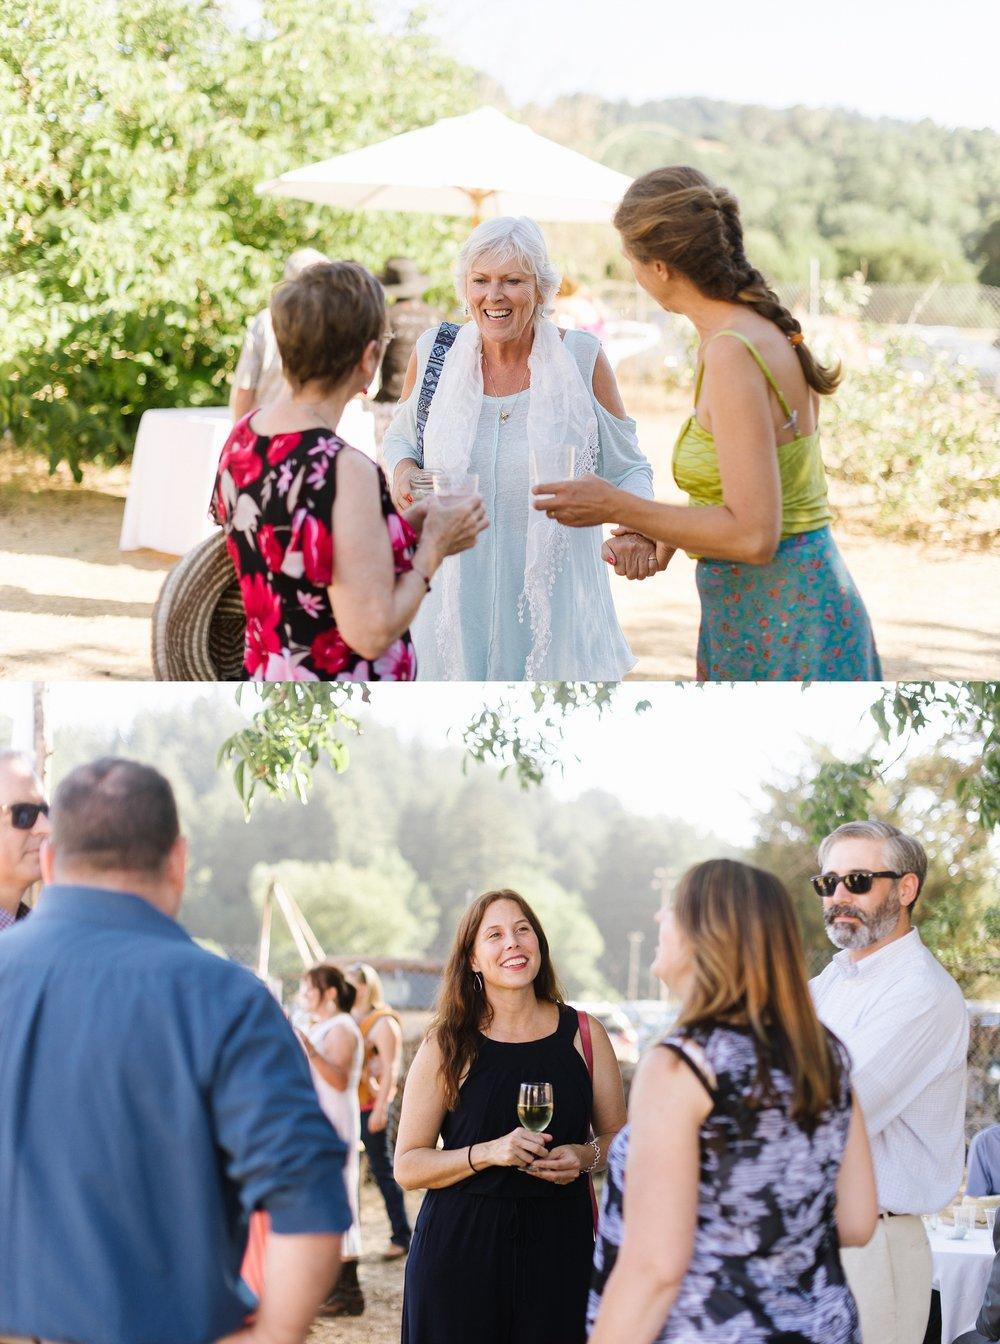 fairfax_ranch_wedding_chelsea_dier_photography_0029.jpg